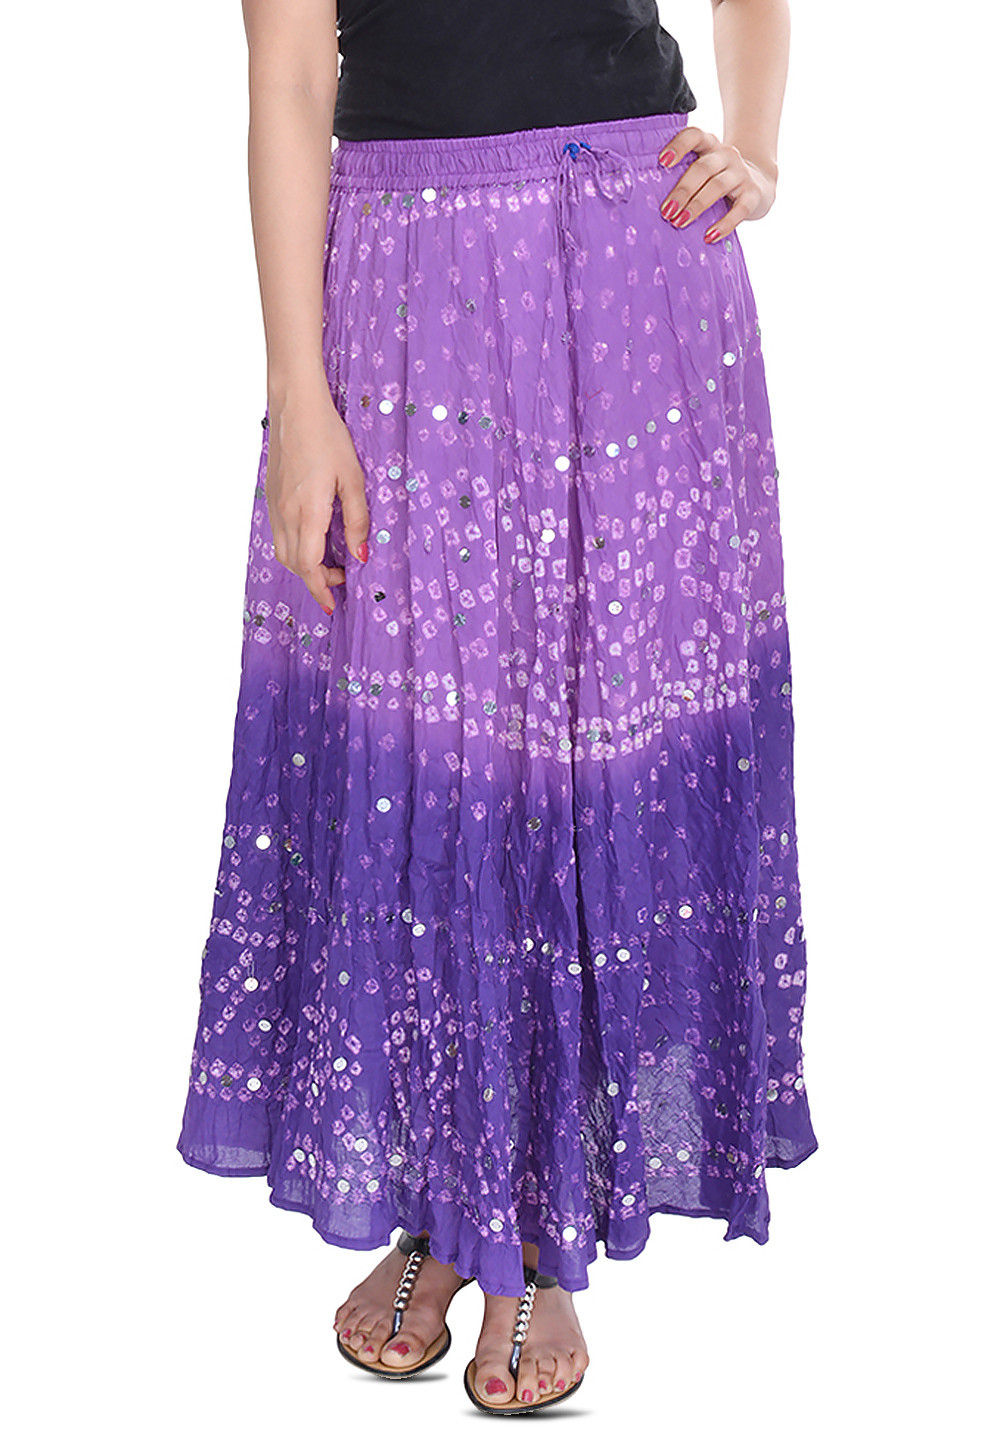 Bandhani Printed Cotton Long Skirt in Purple